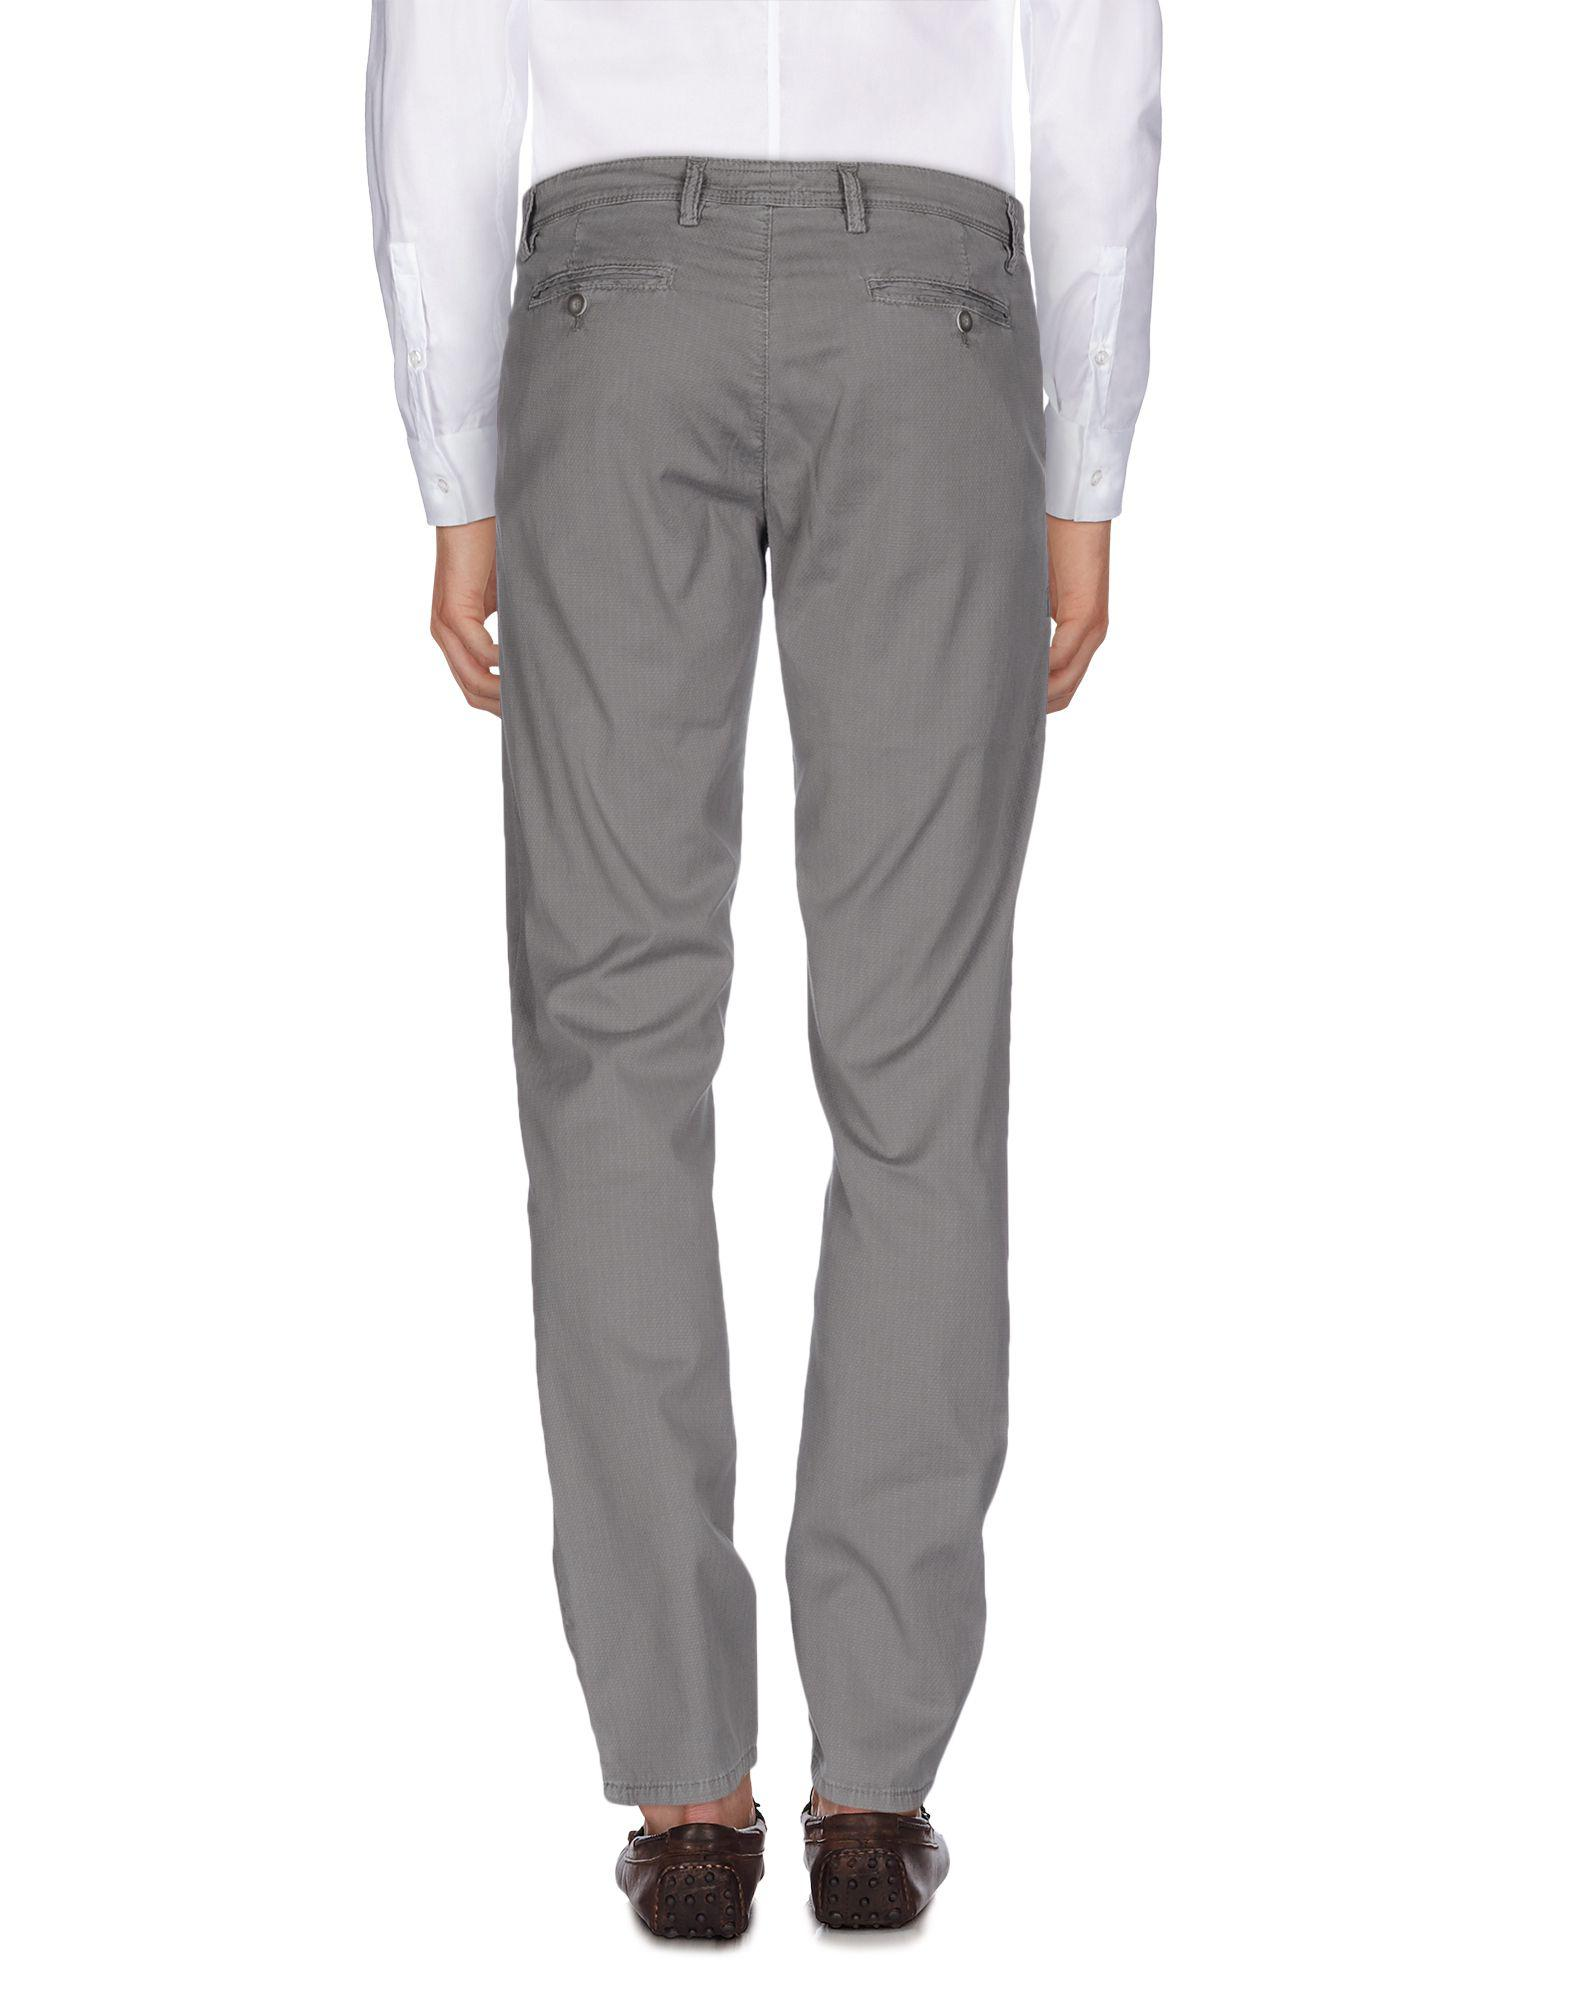 Nicwave Cotton Casual Pants in Grey (Grey) for Men